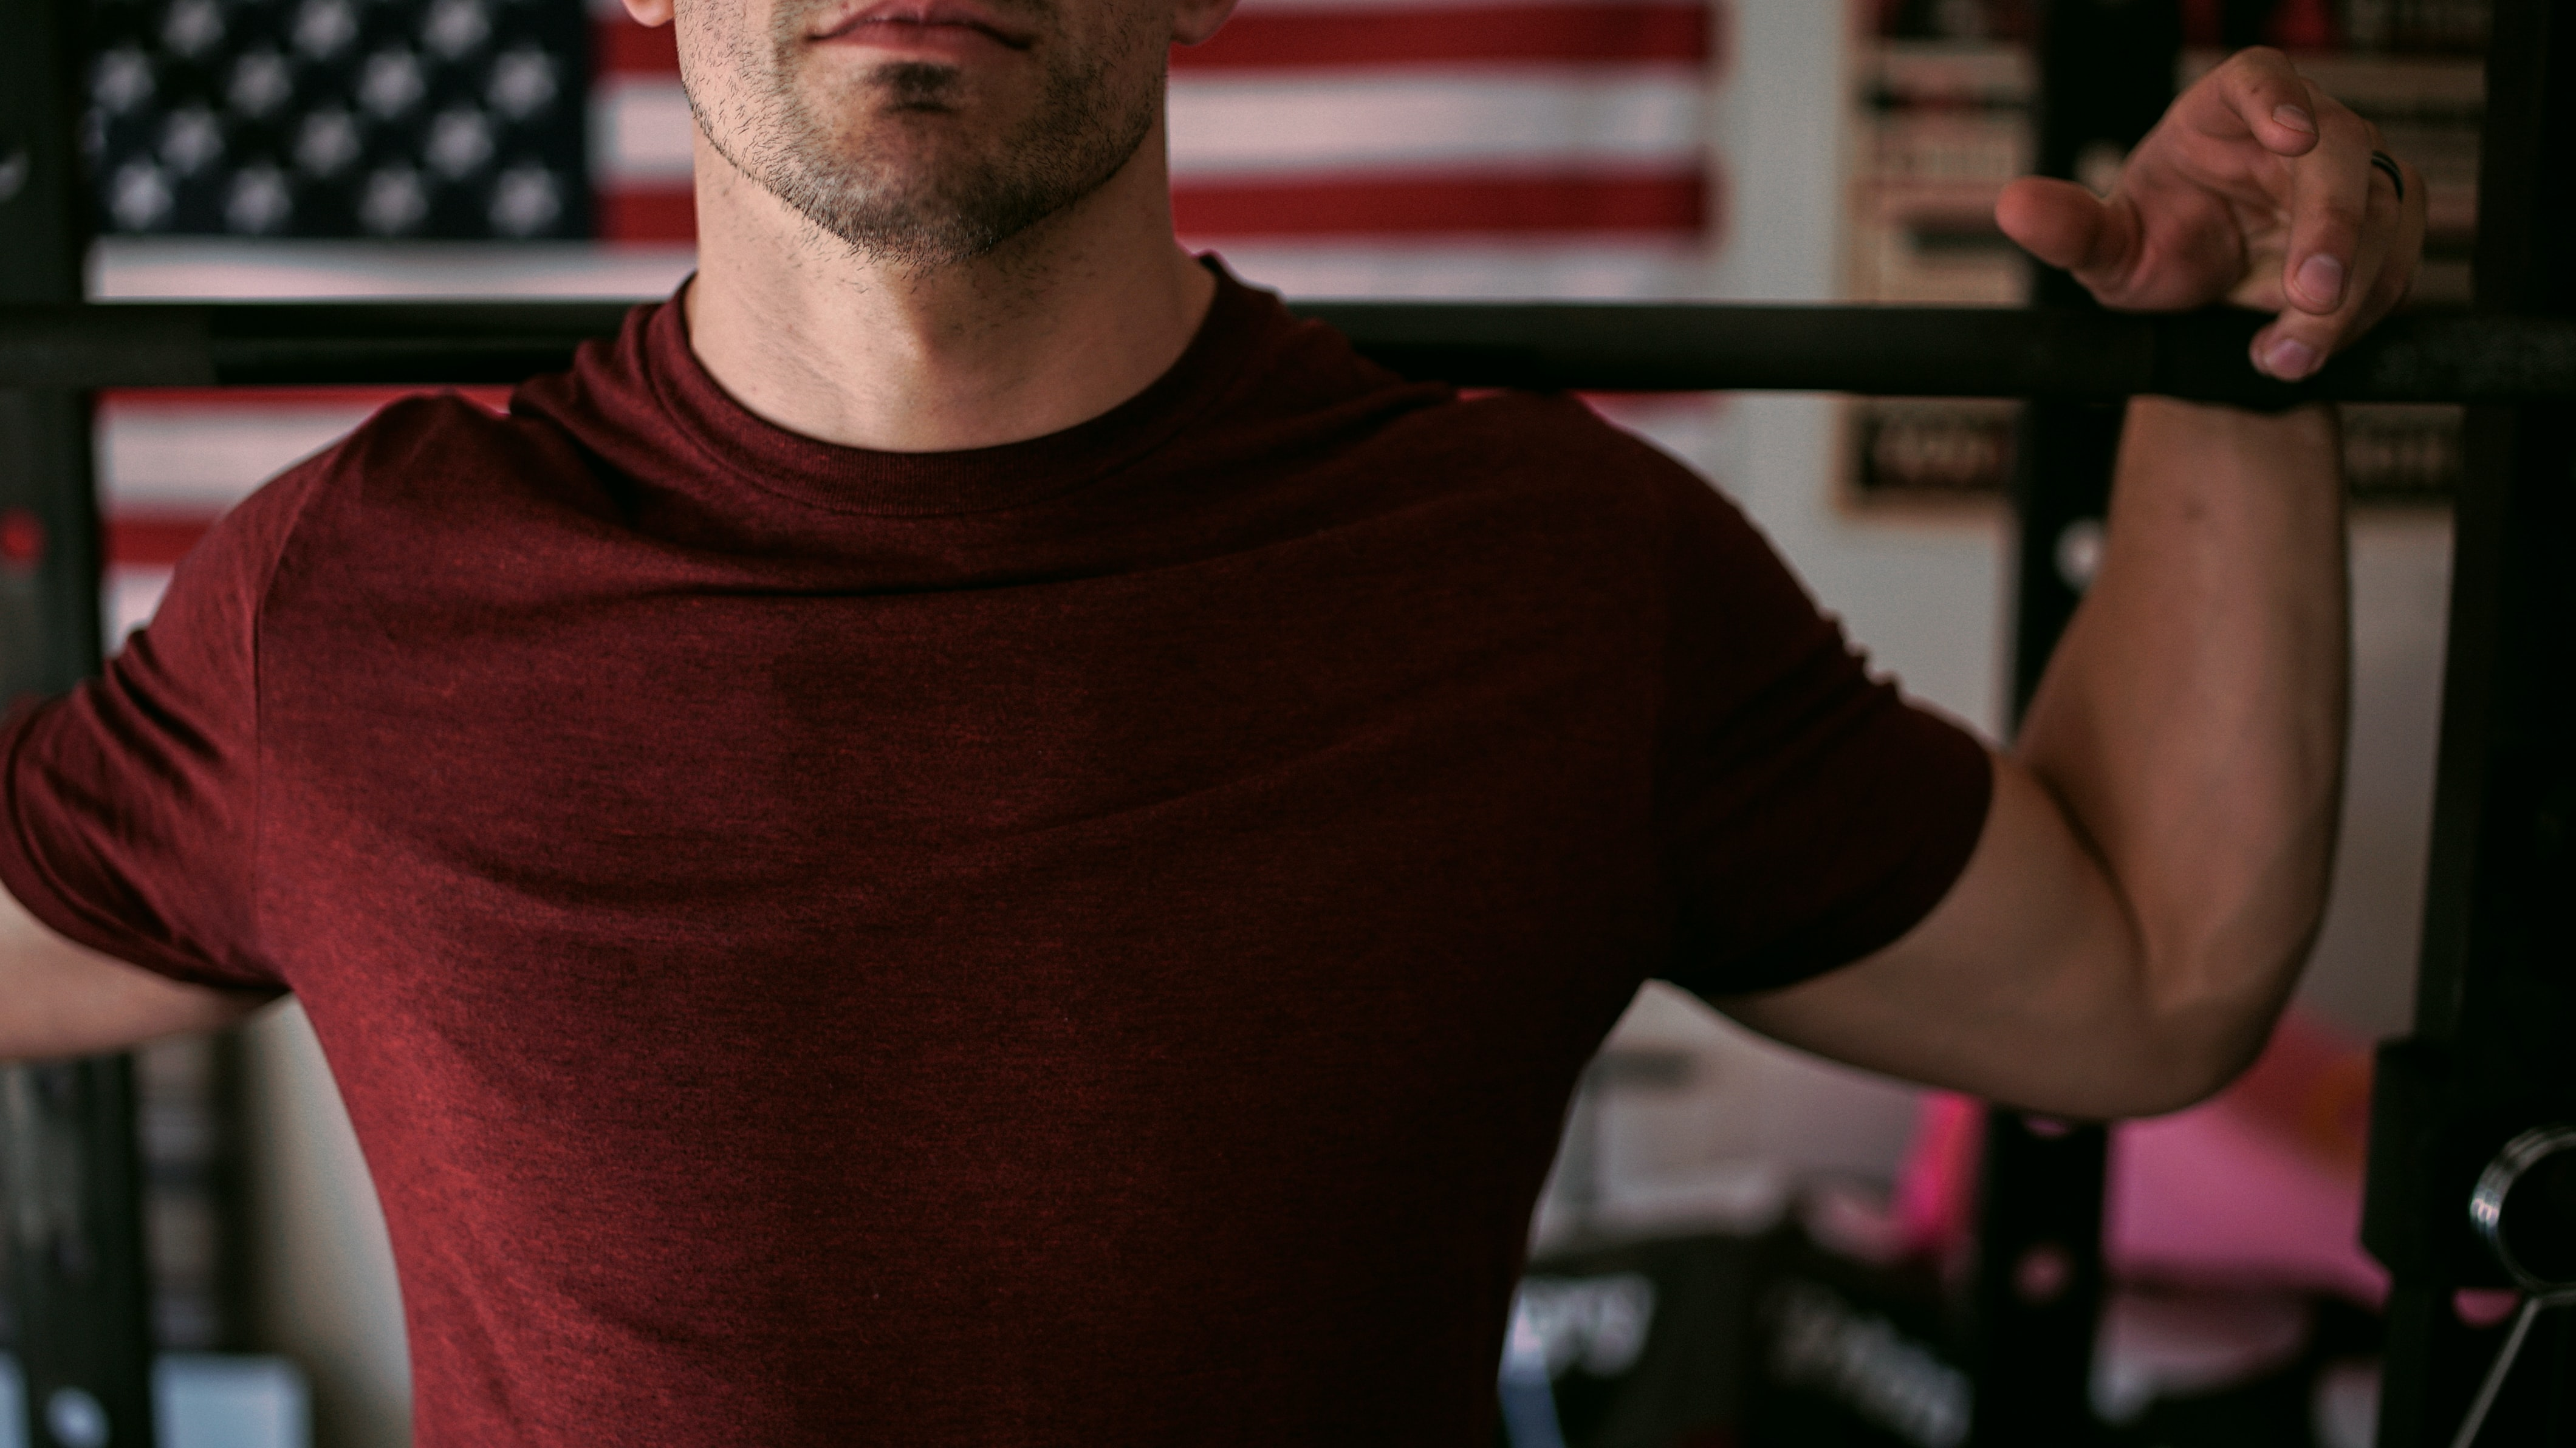 man wearing red crew-neck shirt carrying barbell